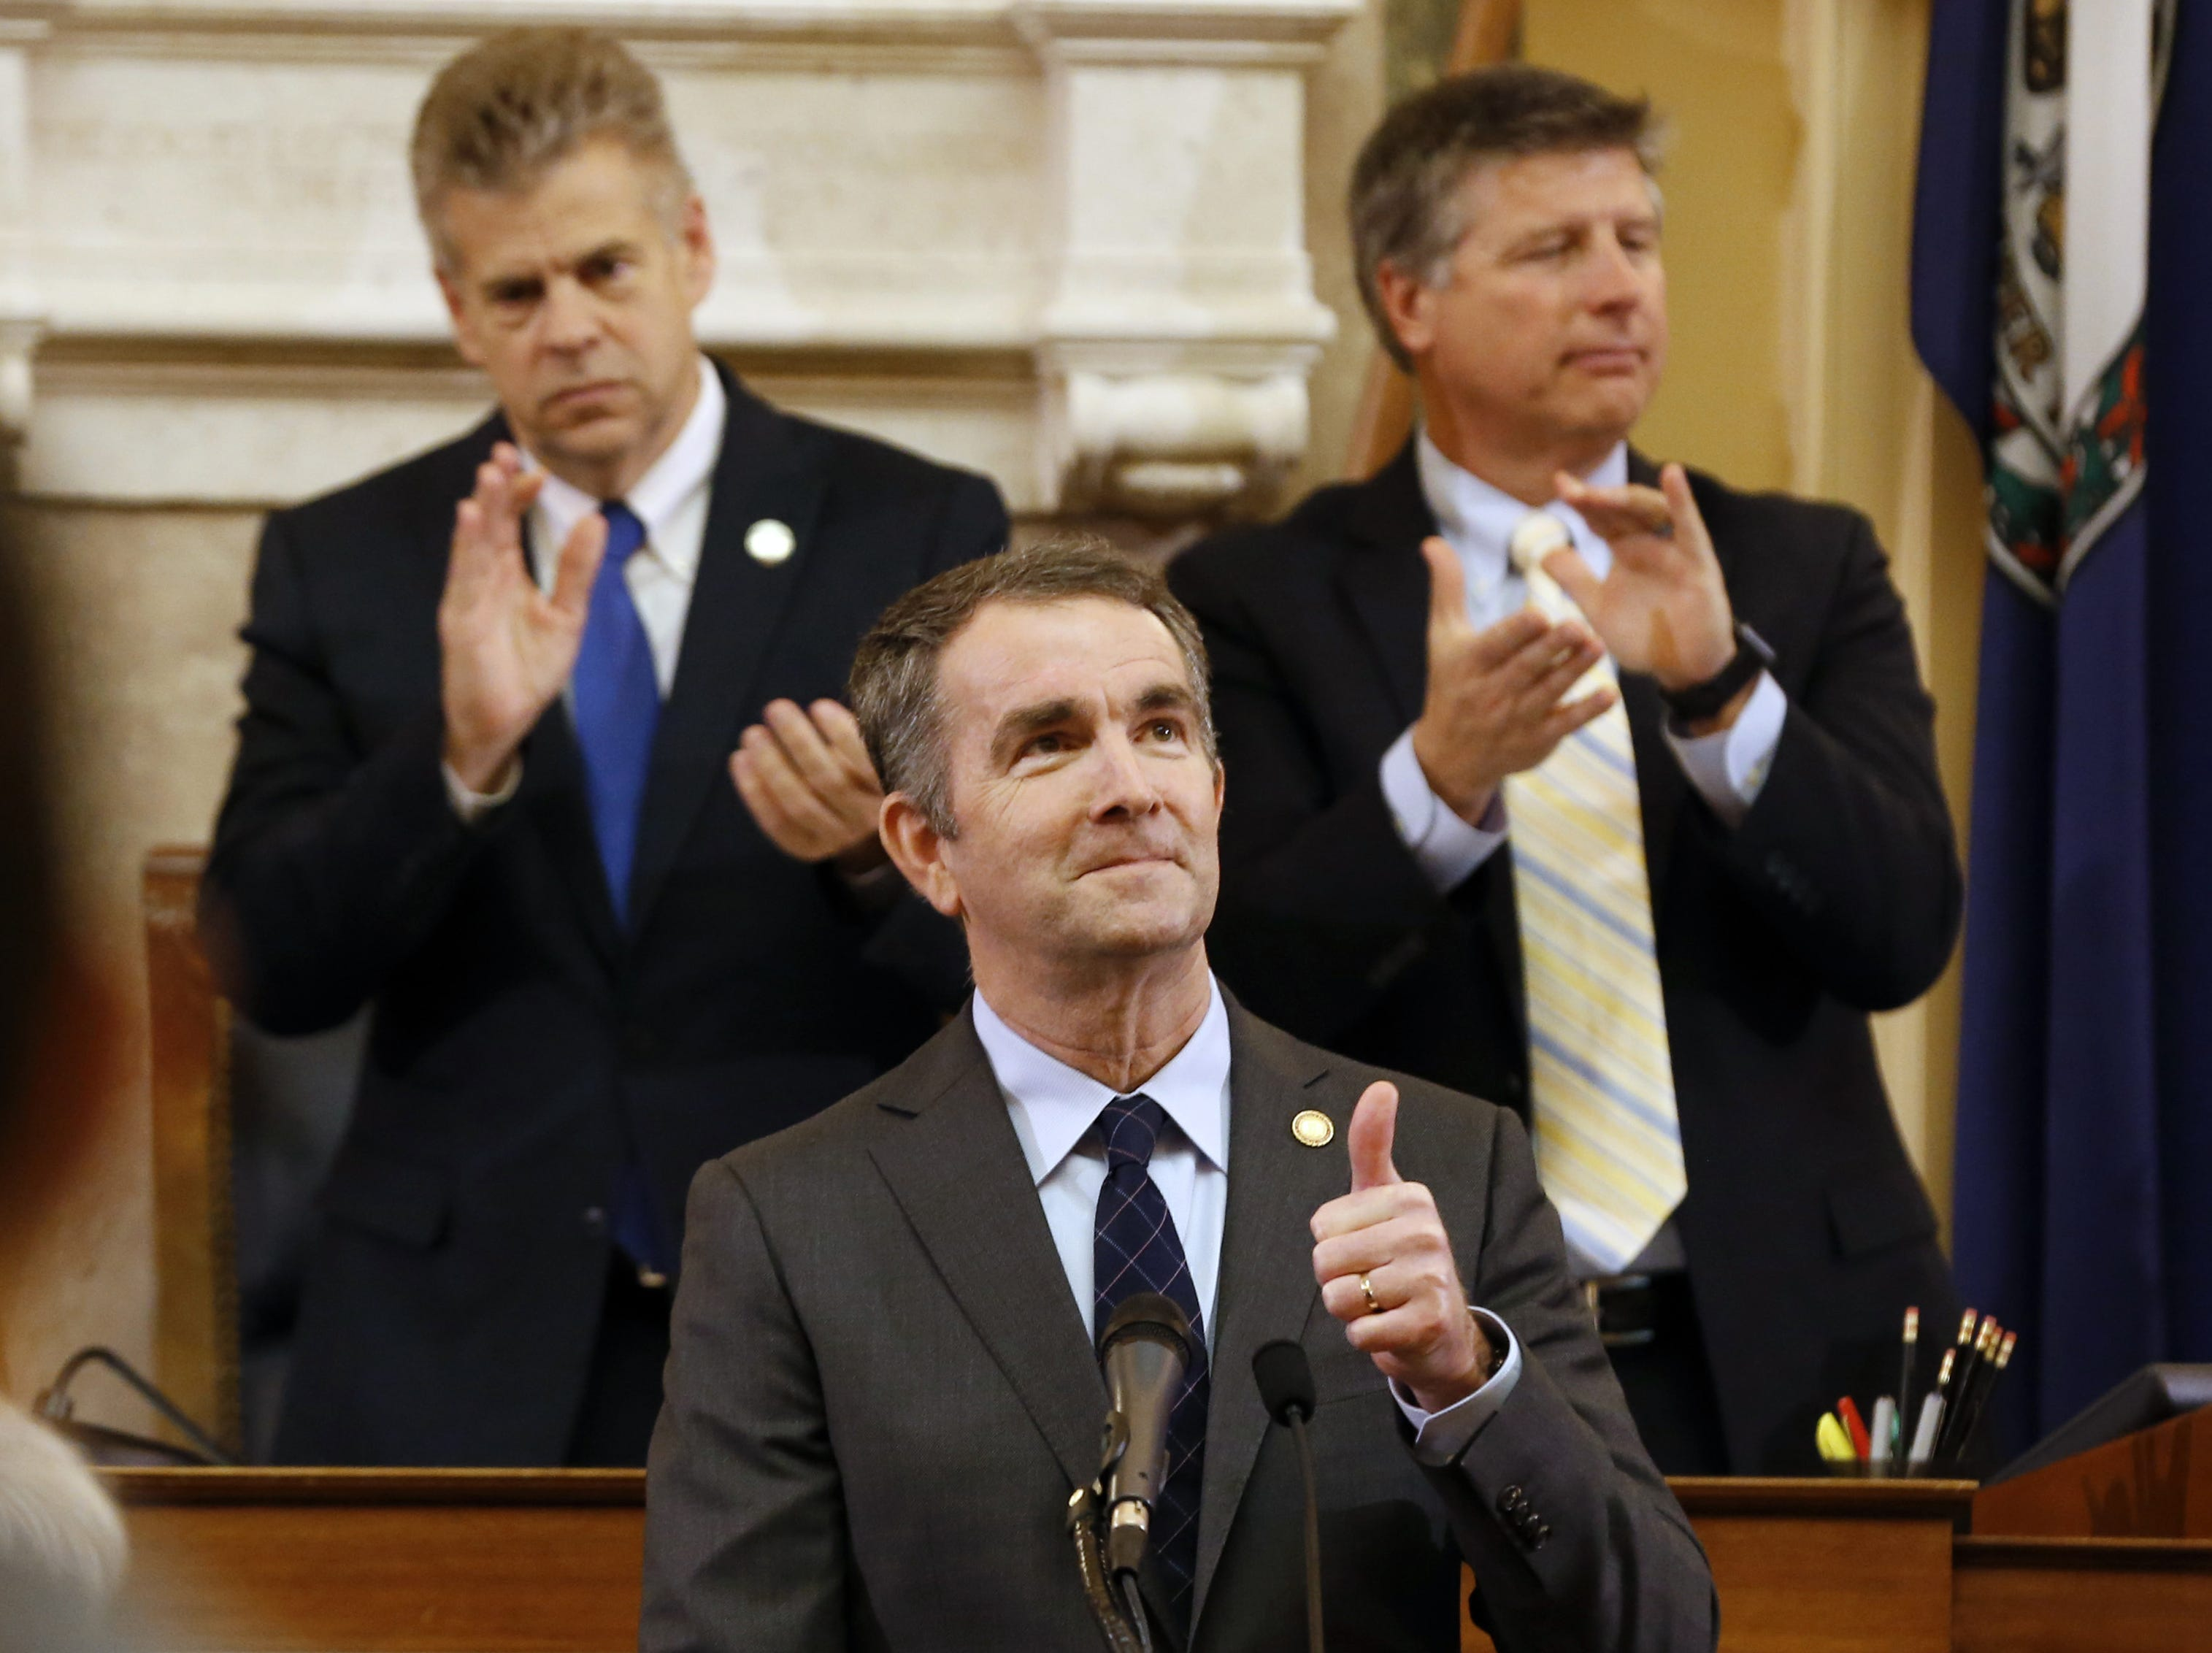 Virginia Gov. Ralph Northam, center, gives a thumbs-up as he delivers his State of the Commonwealth address during a joint session of the Virginia Legislature in the House chambers at the Capitol in Richmond on Jan. 9, 2019.